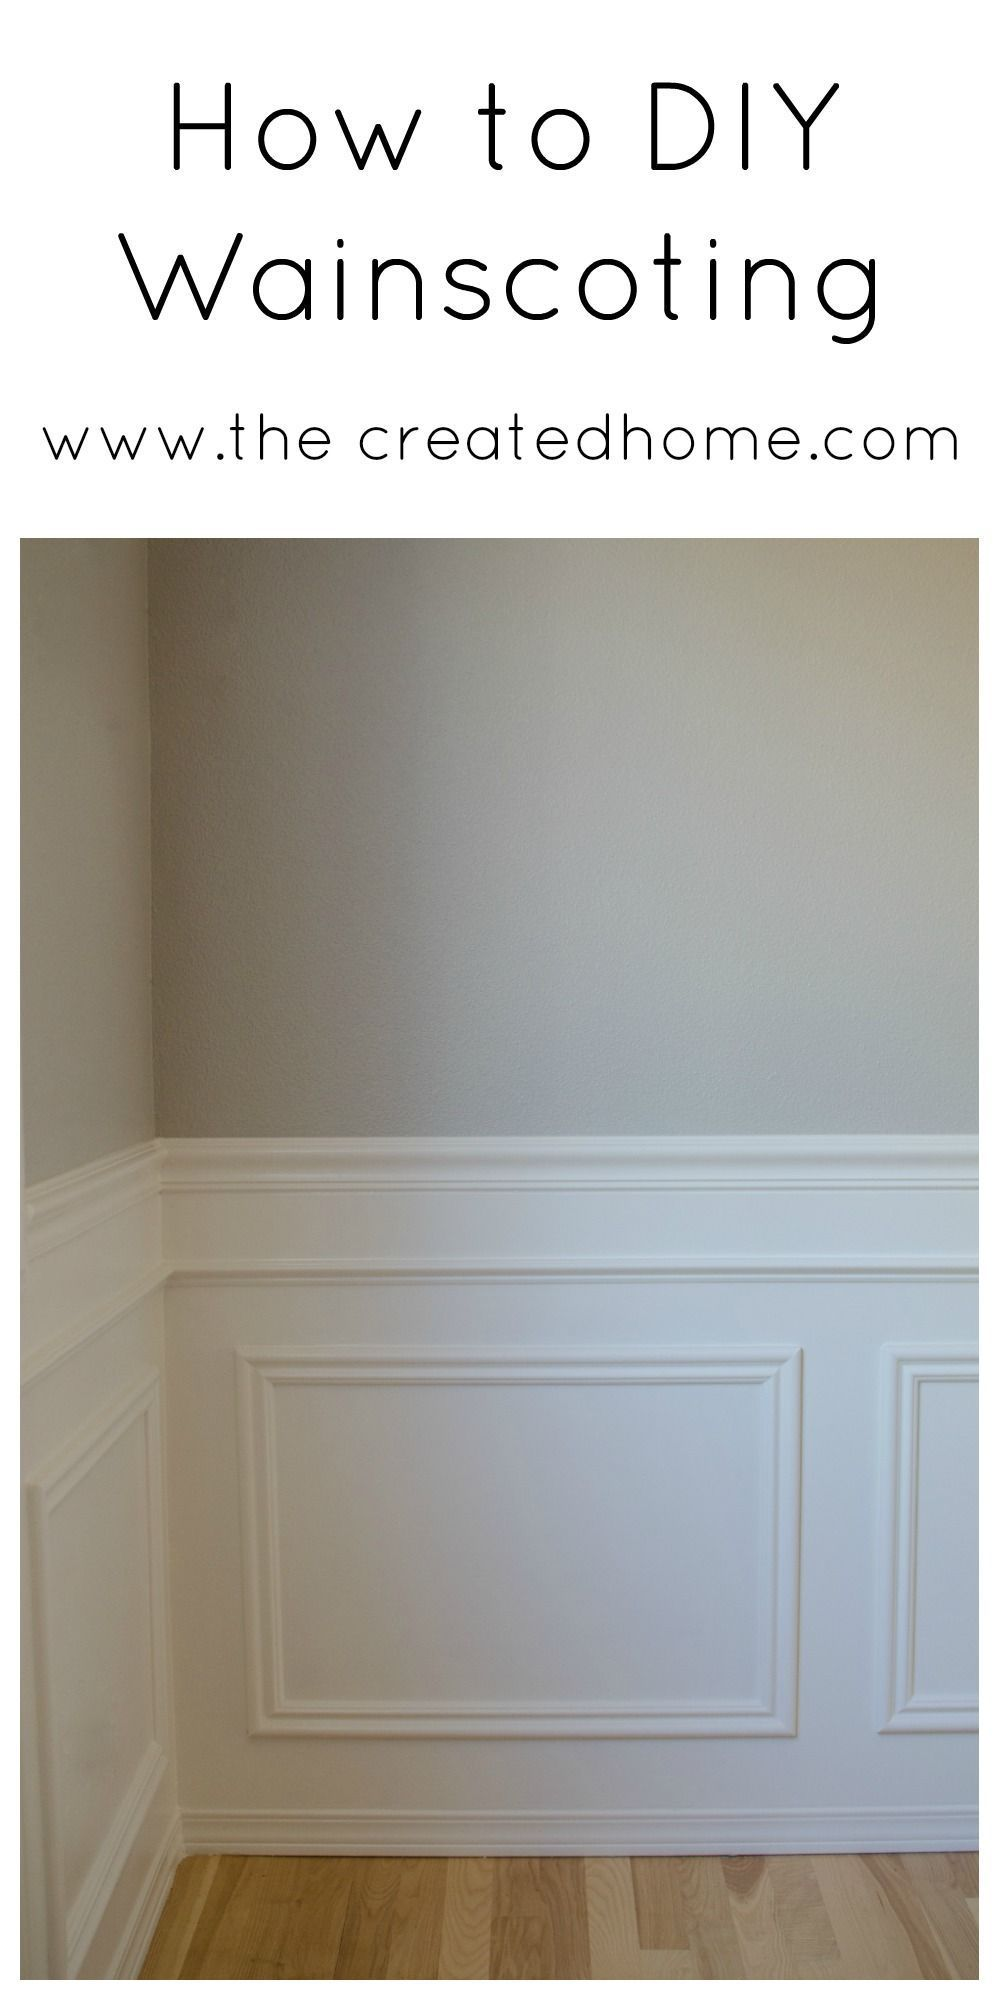 How to diy wainscoting wainscotingstyles wainscoting styles